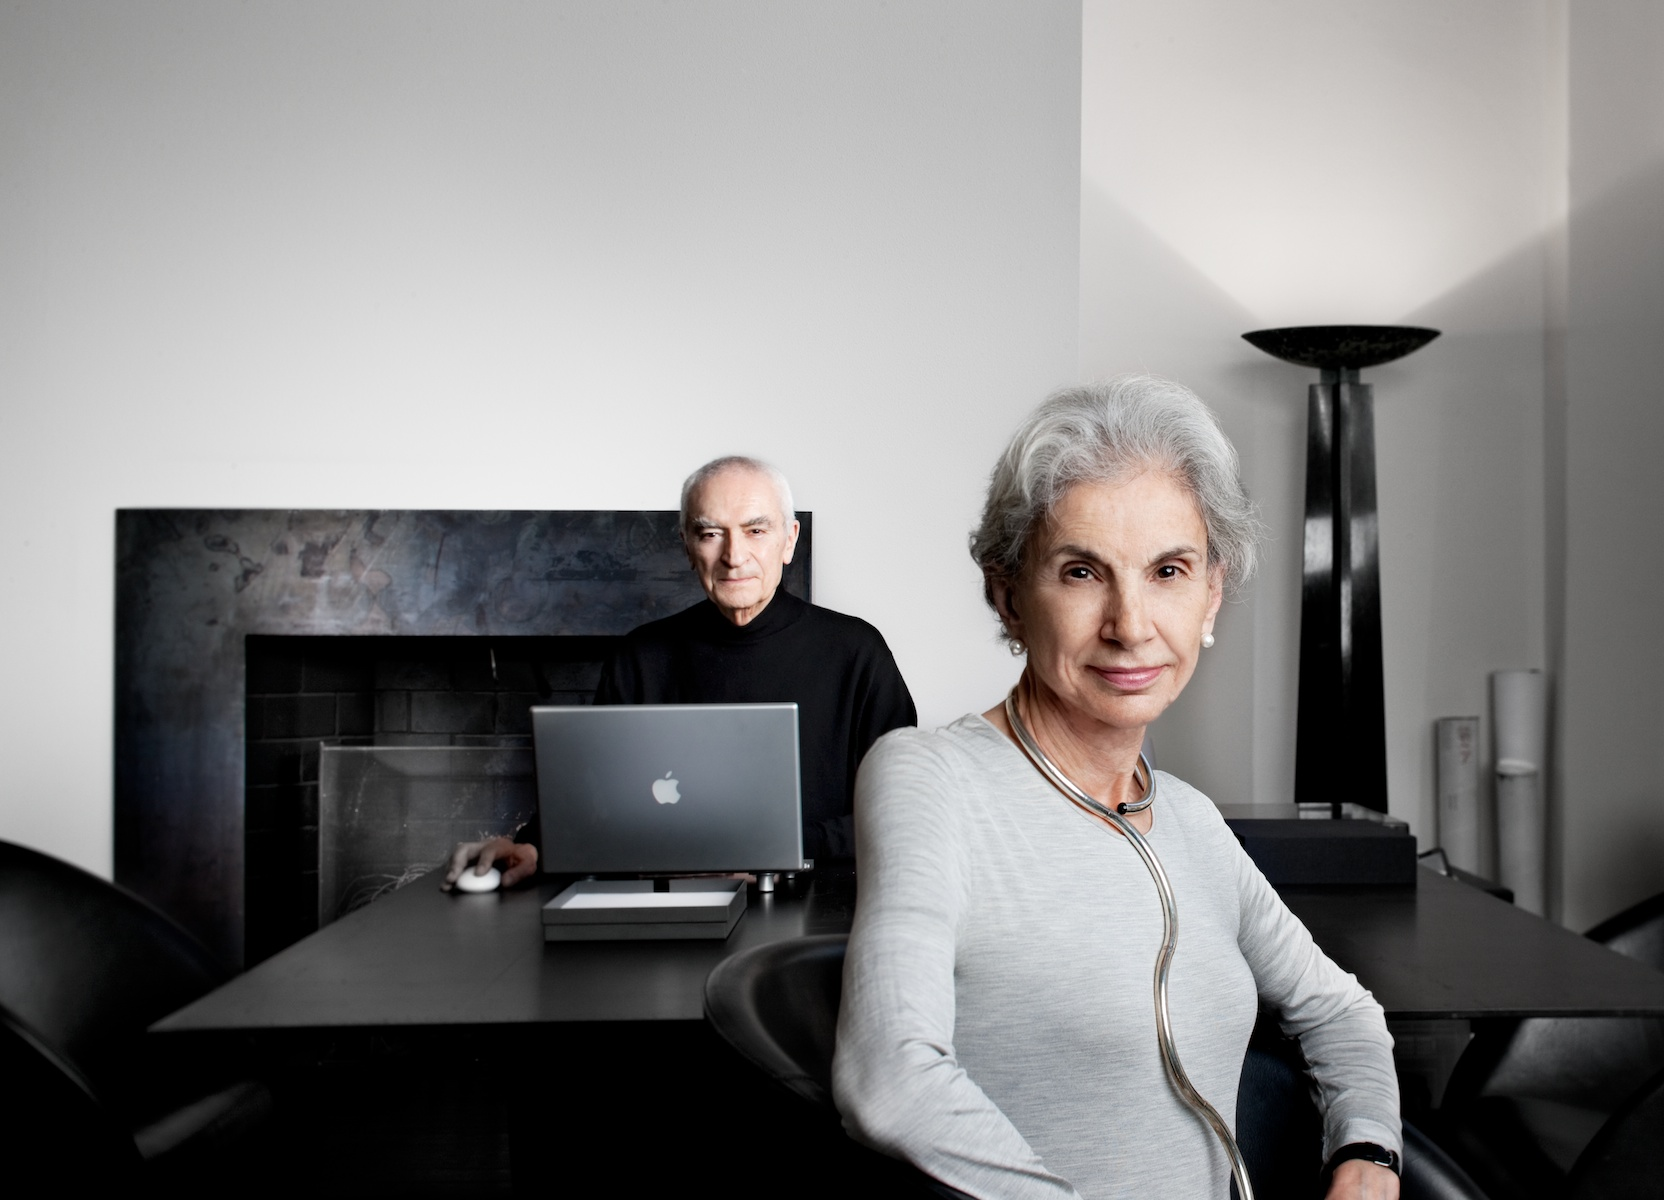 My favorite frame from the 2009 portrait session with Massimo and Lella.